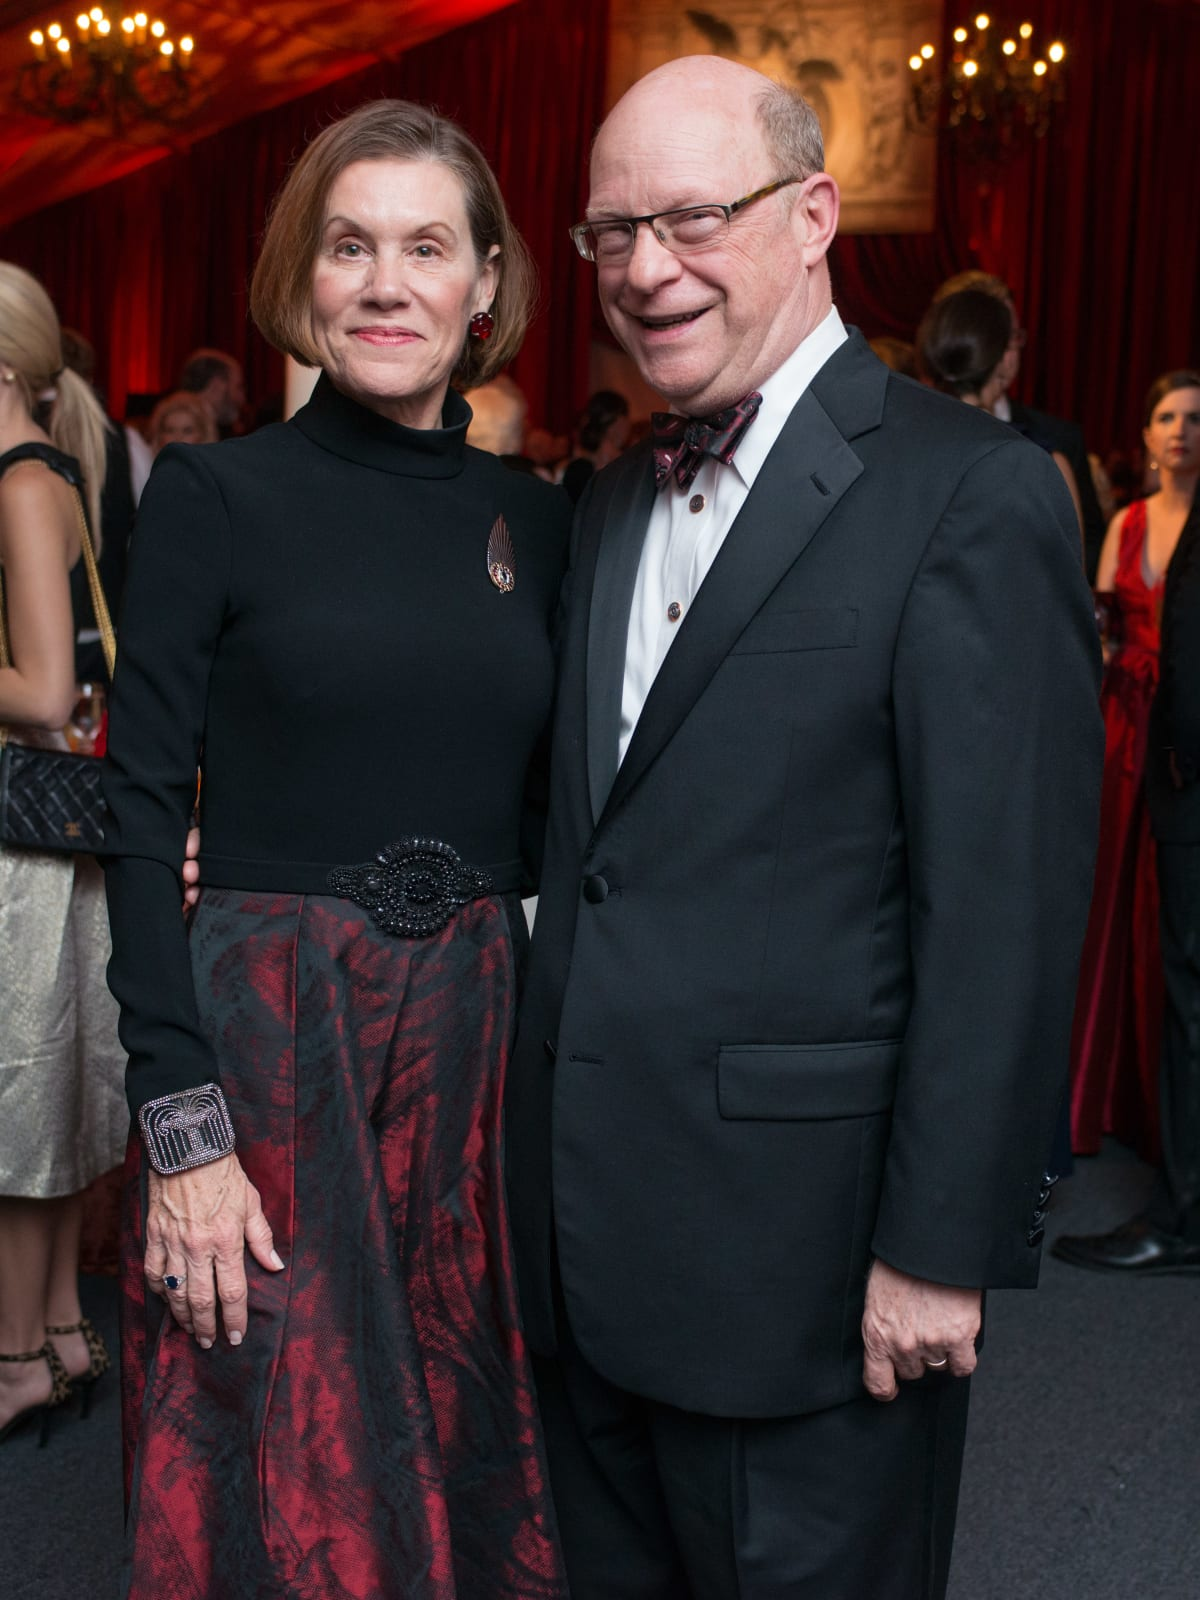 News, Shelby, HGO opening night, Oct. 2015, Susan Pennebaker, Ward Pennebaker